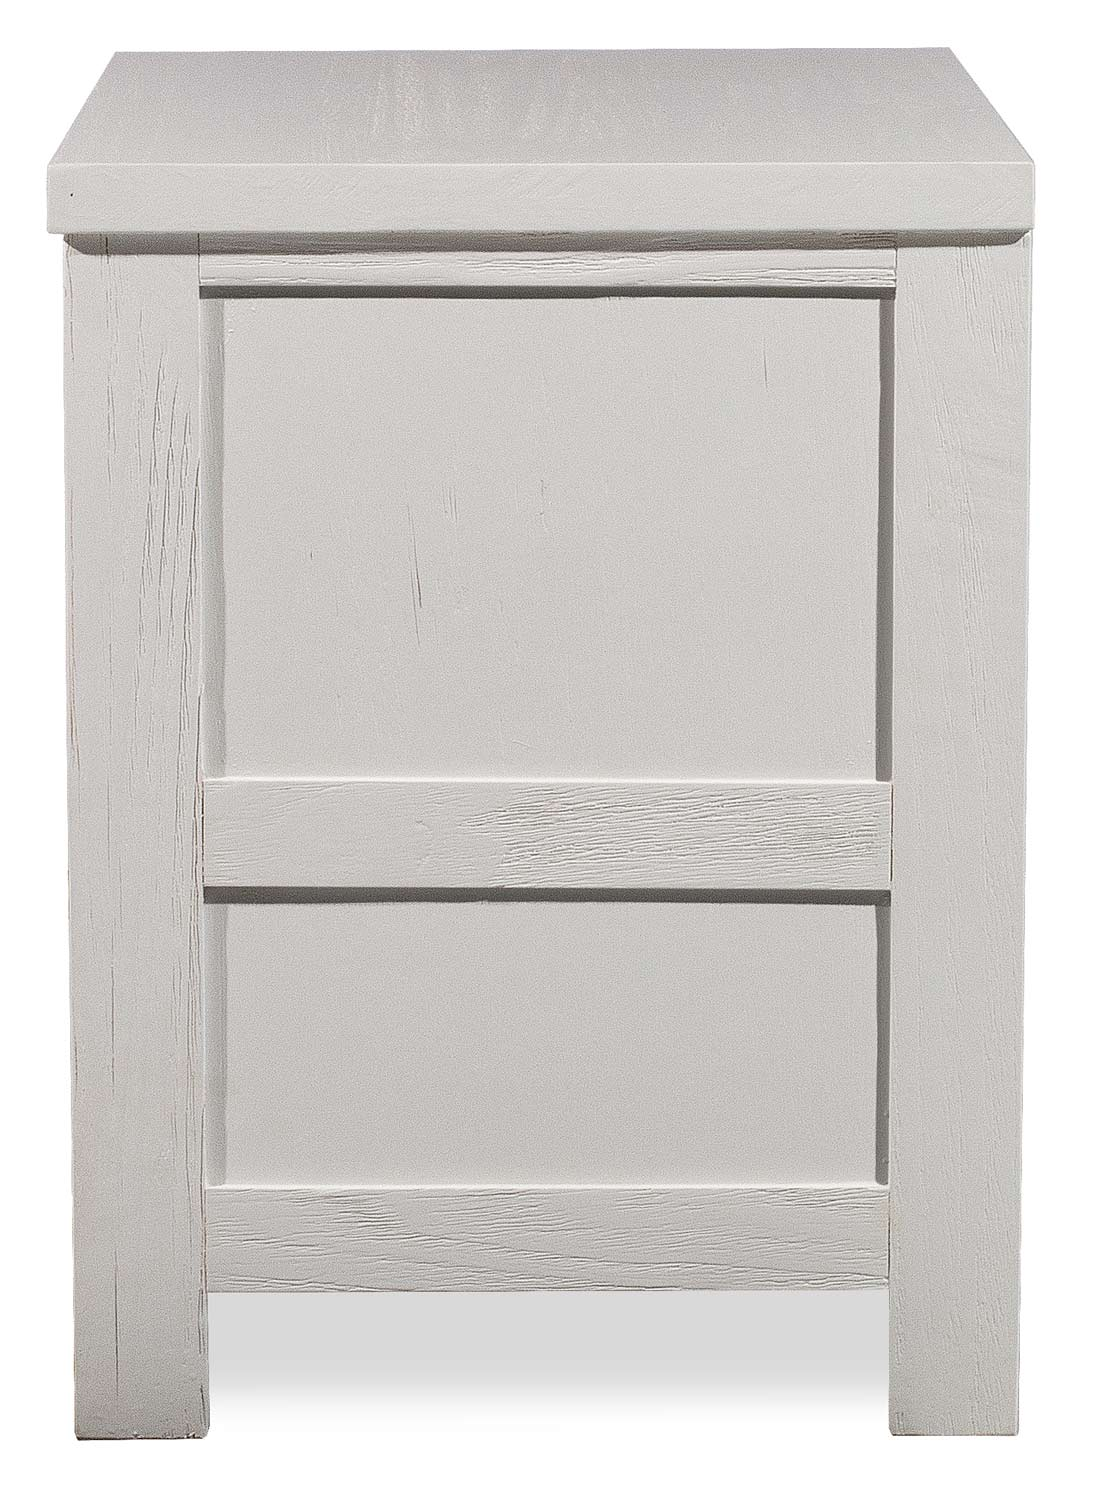 NE Kids Highlands Nightstand - White Finish